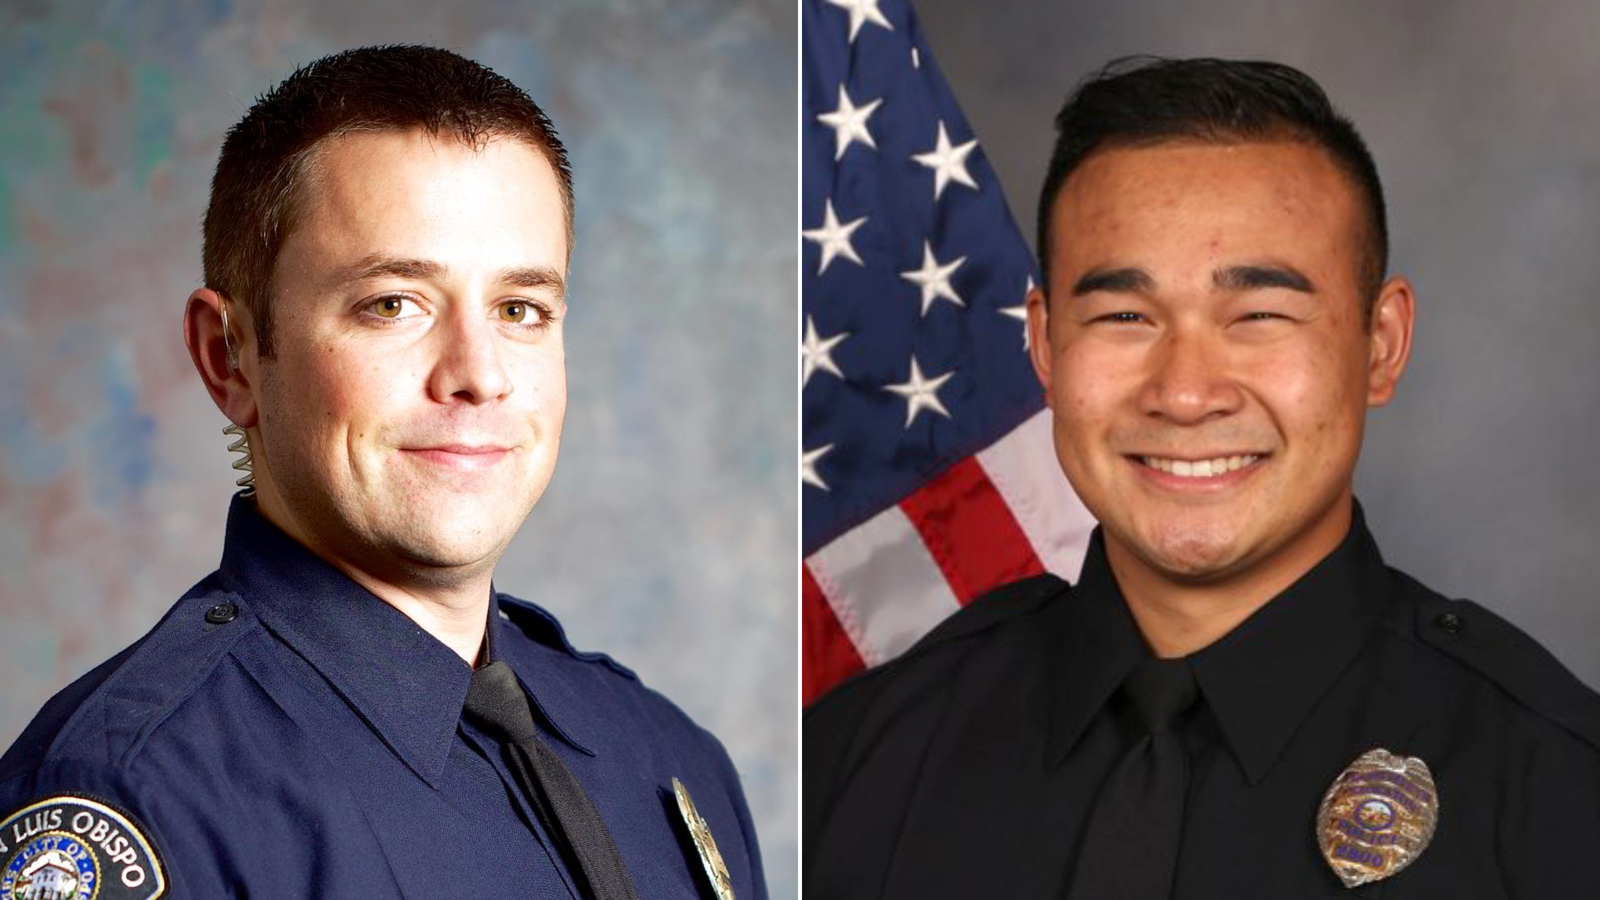 Two California police officers were killed while on duty in a 24-hour span, officials say